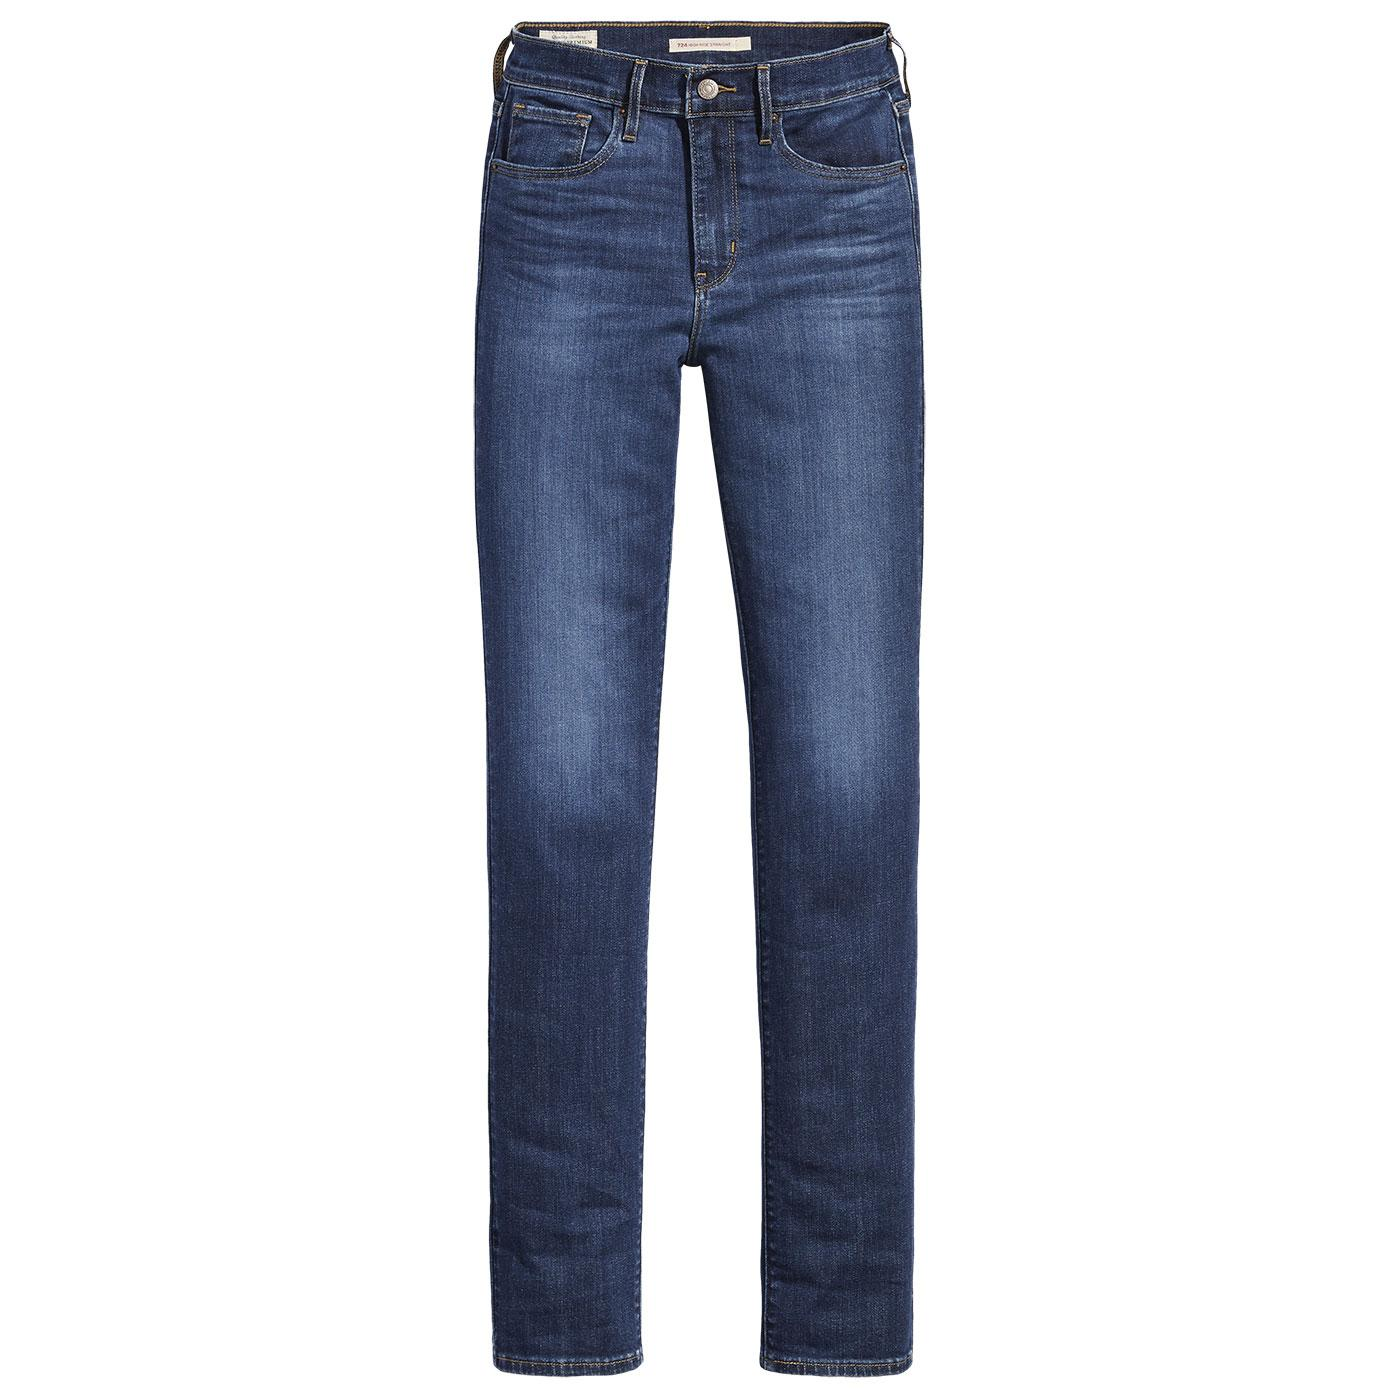 LEVI'S 724 High Rise Straight Jeans - Carbon Dust